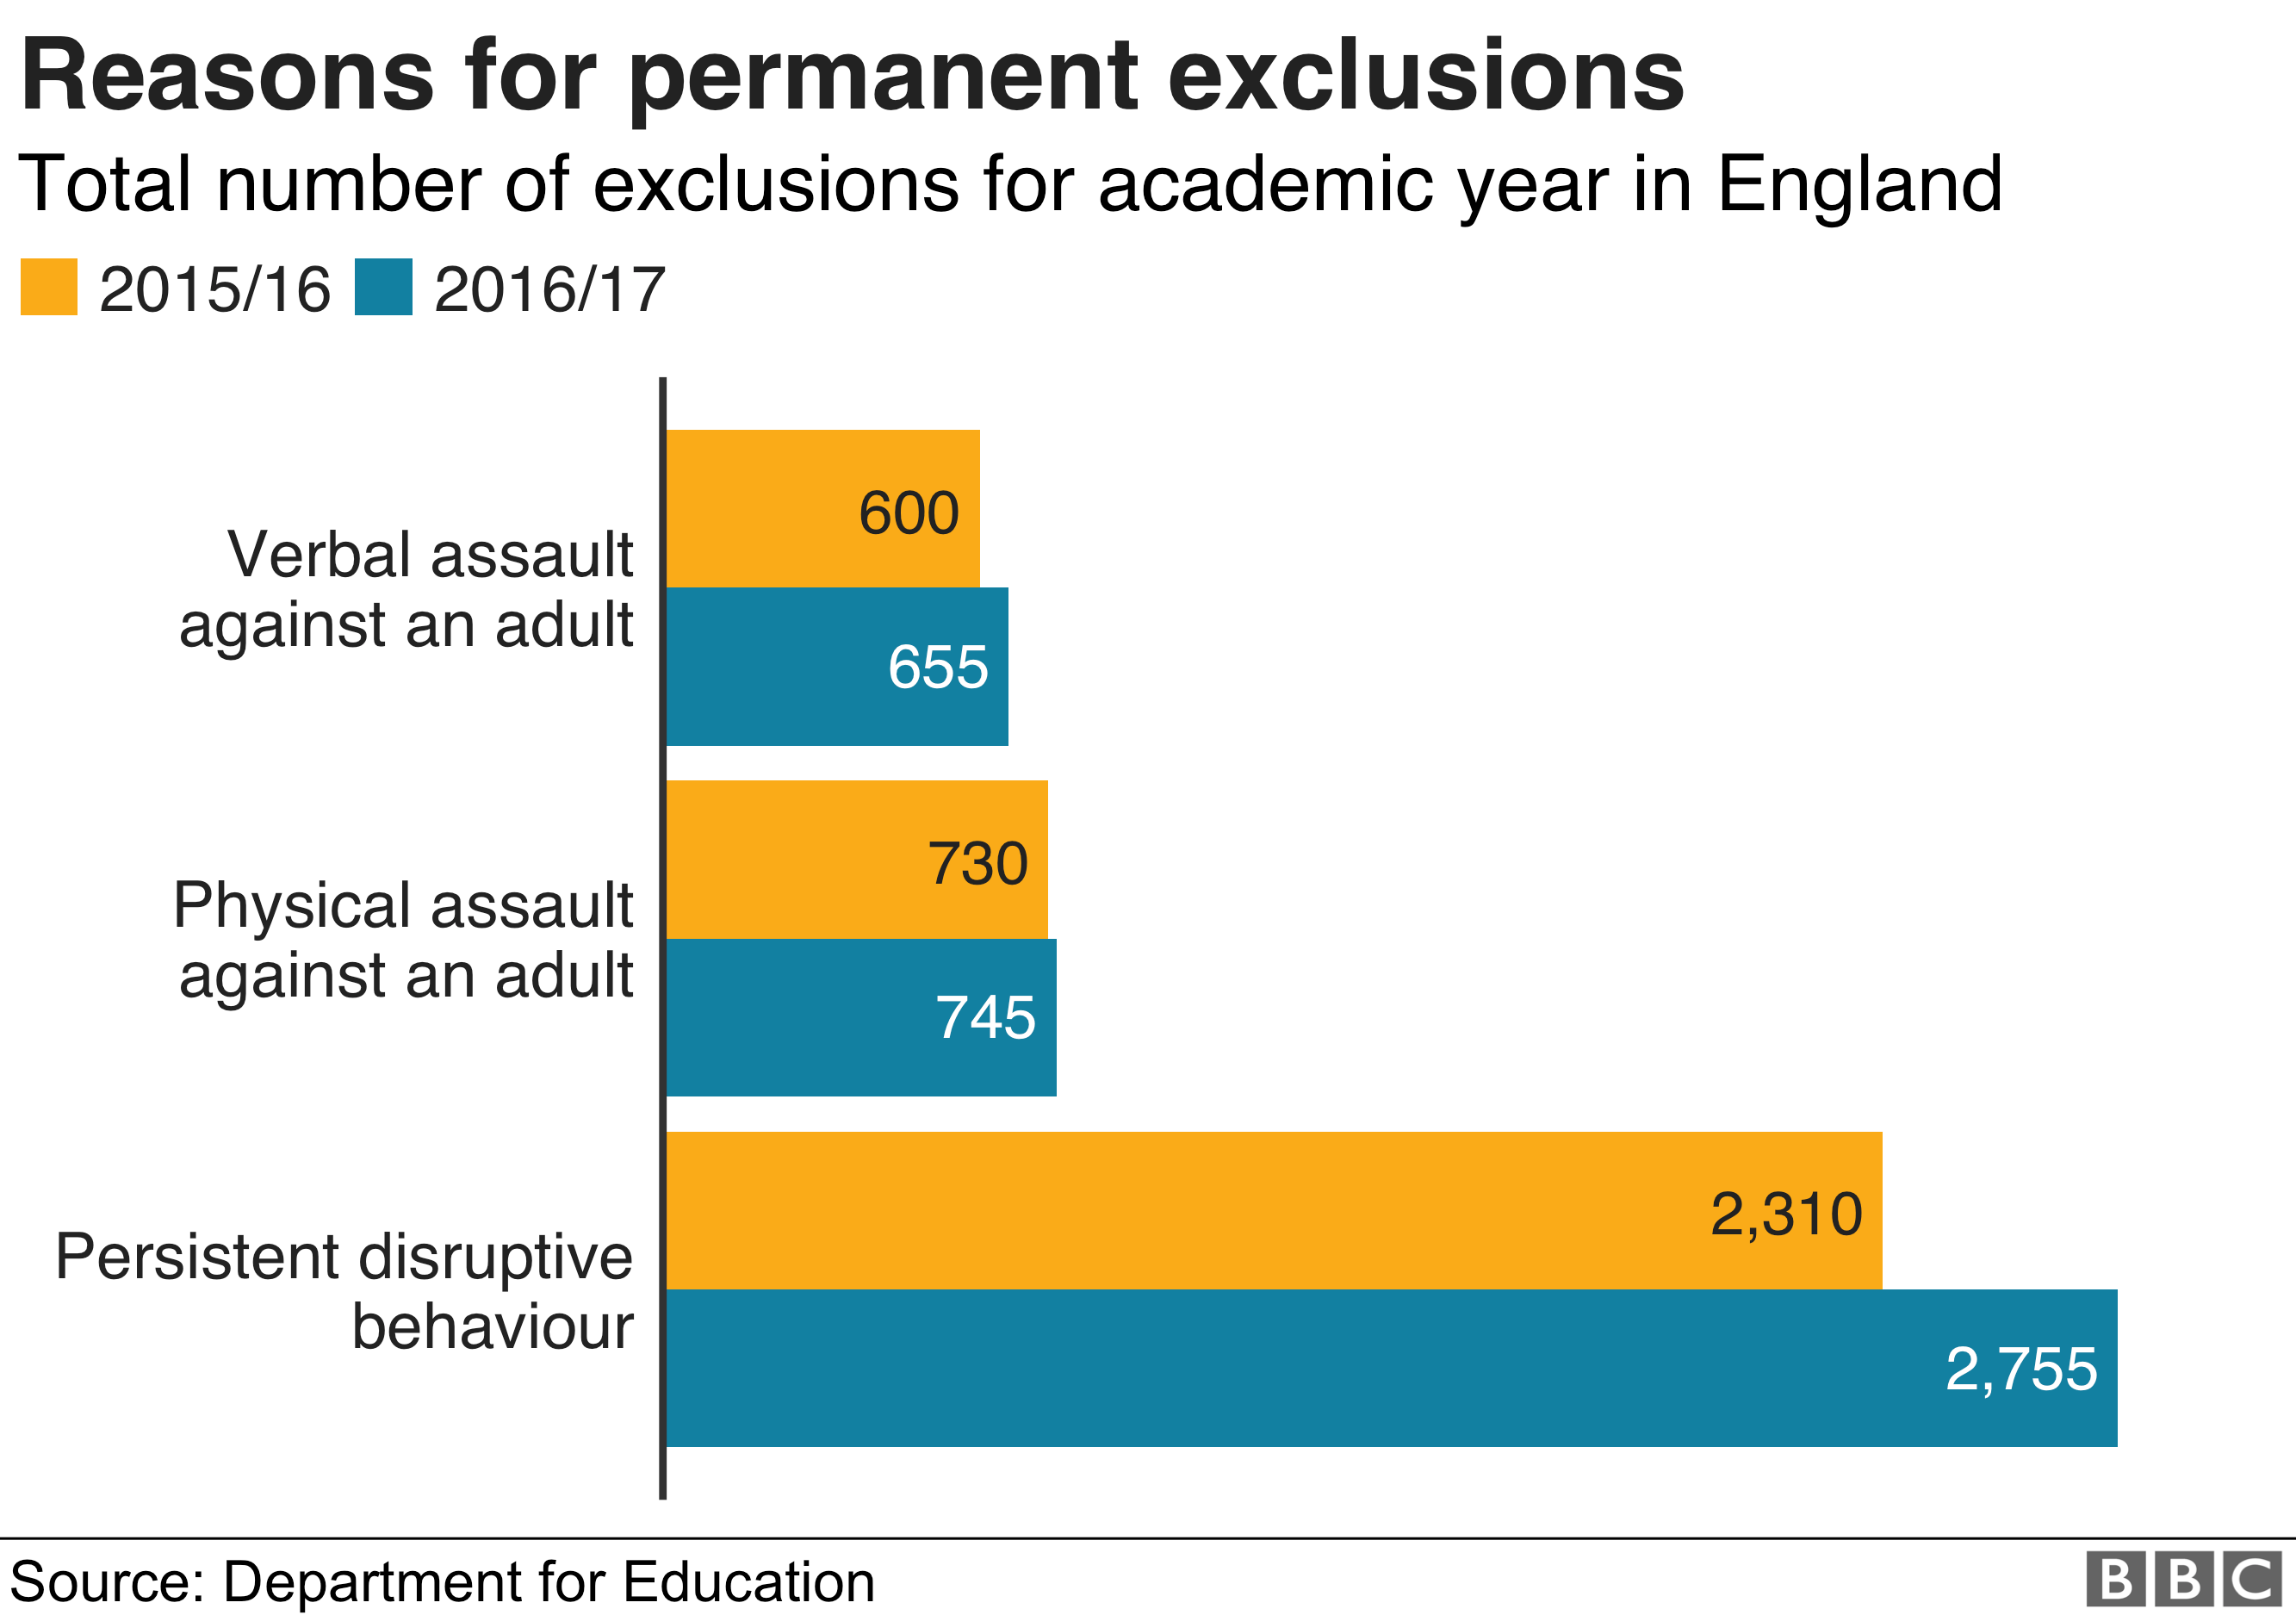 Chart showing reasons for permanent exclusions at schools in England during the 2016/17 academic year